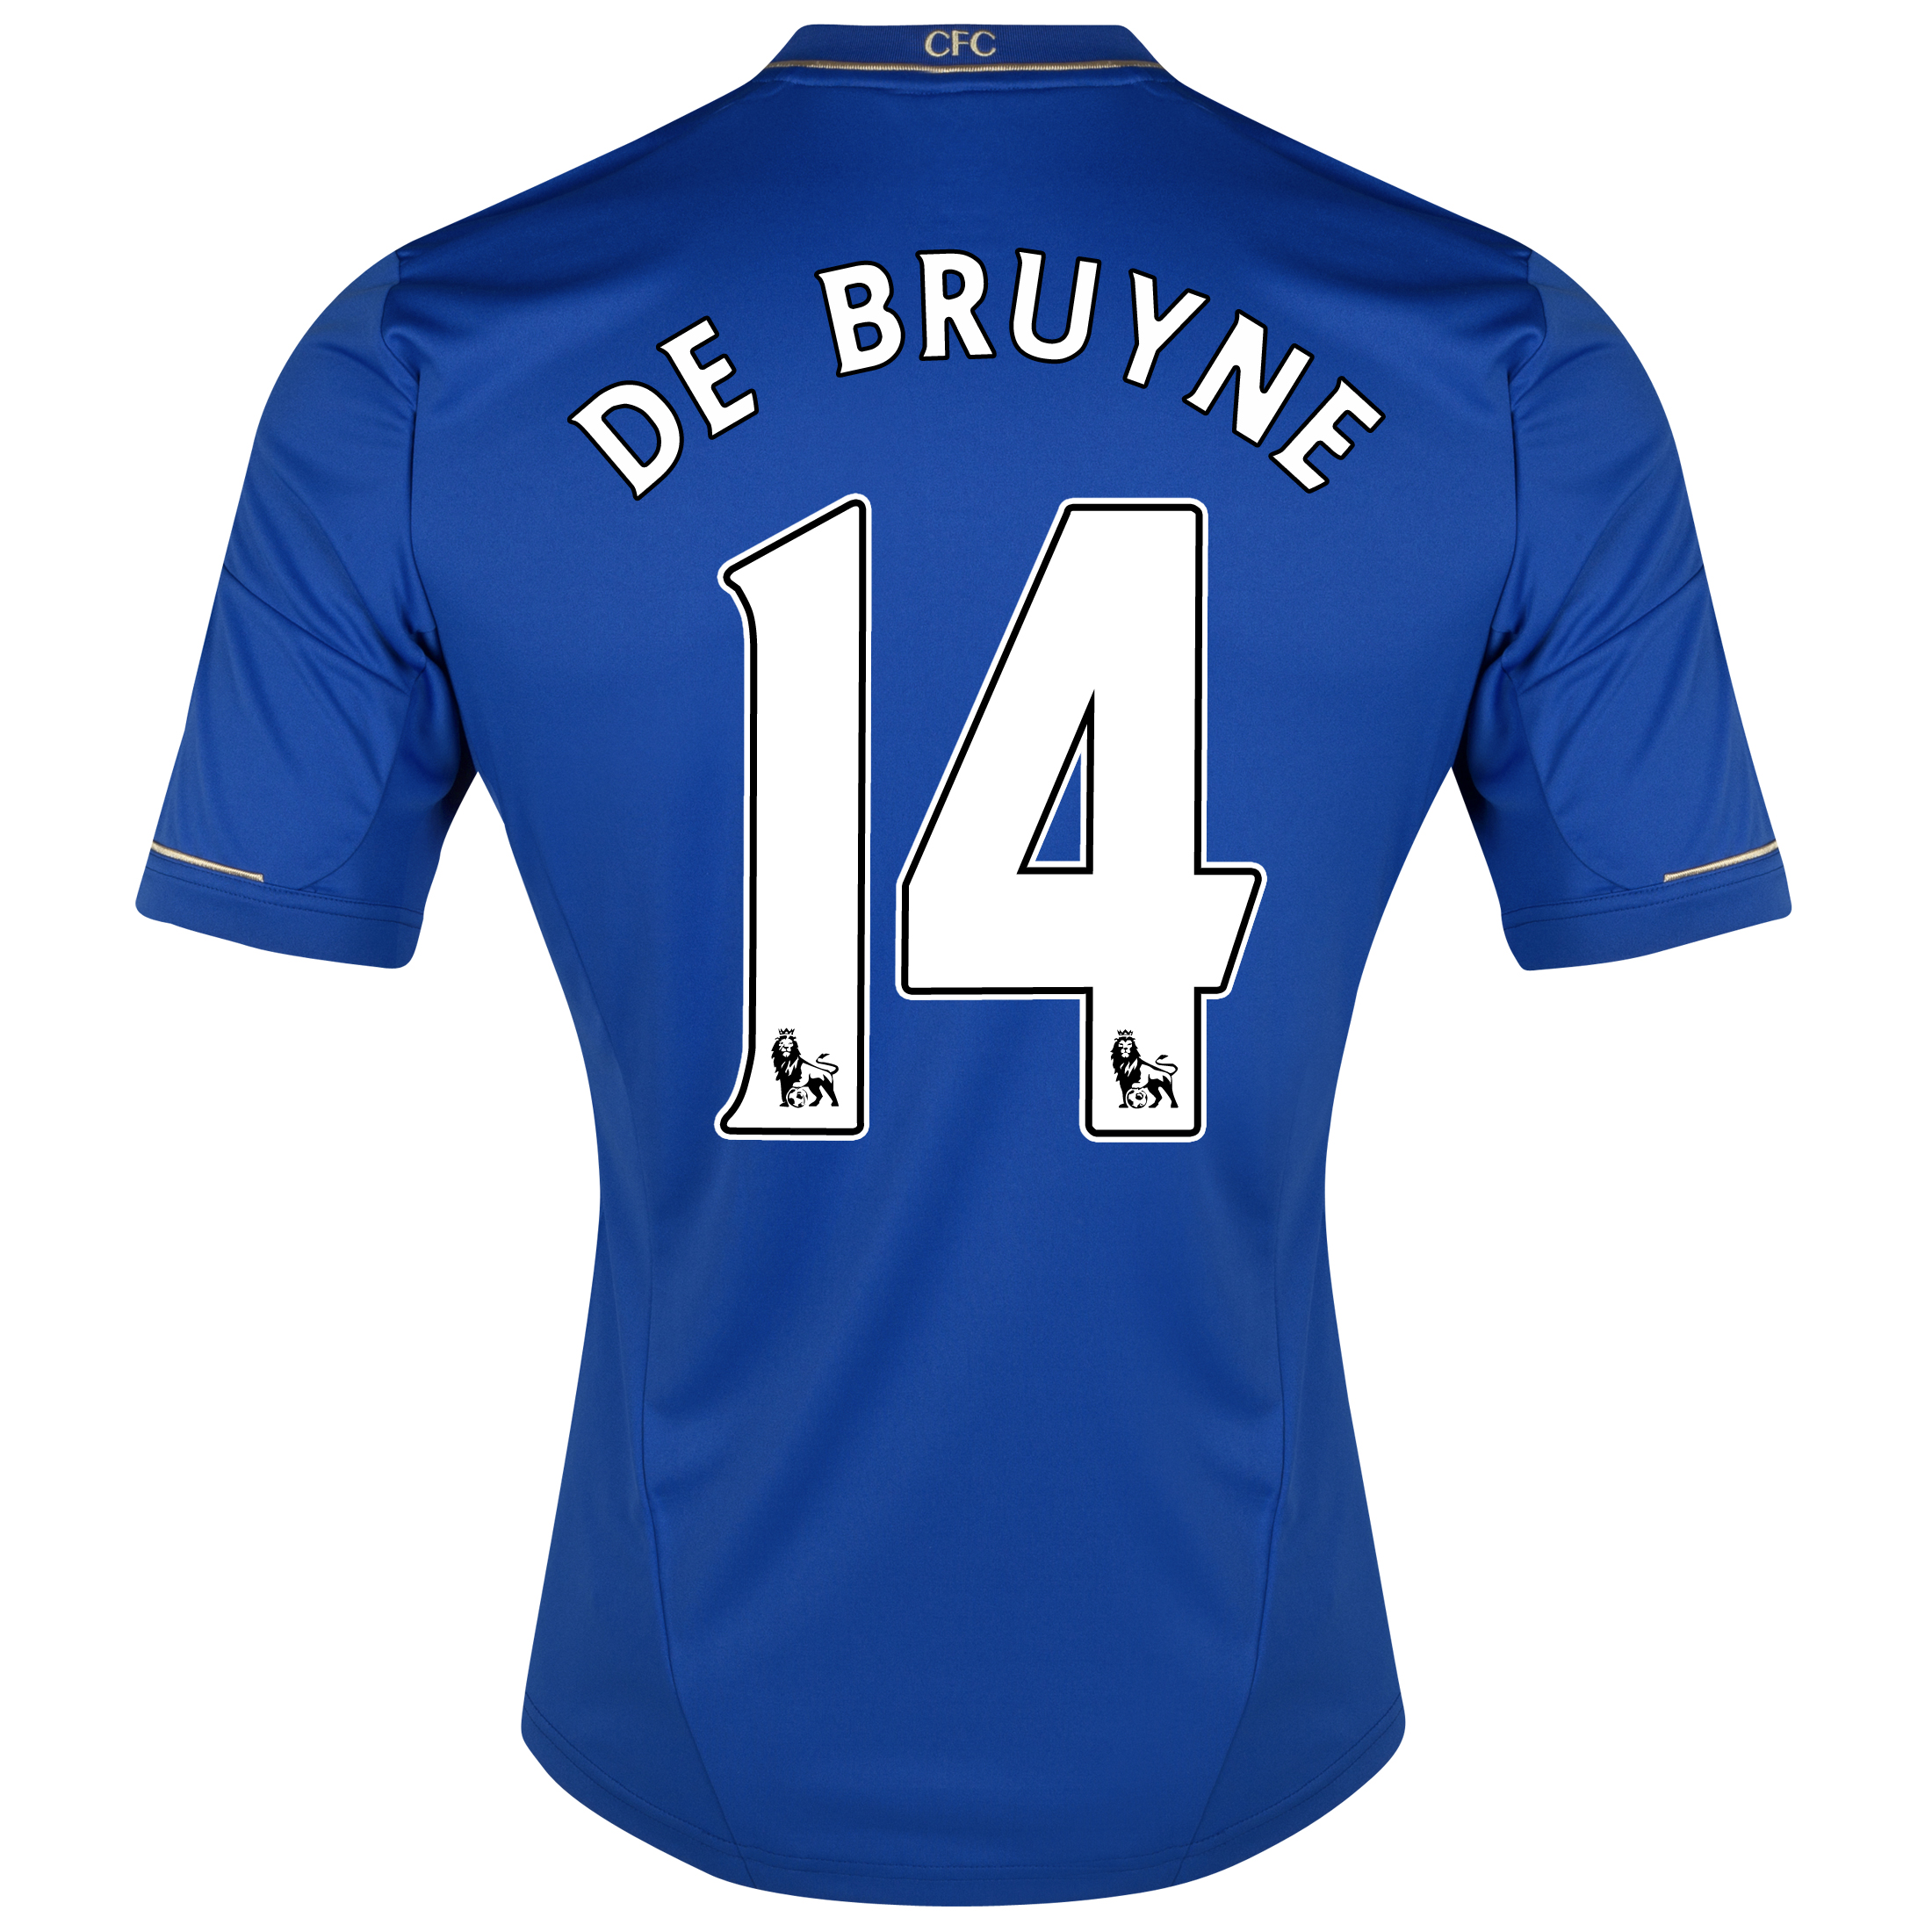 Chelsea Home Shirt 2012/13 - Youths with De Bruyne 14 printing